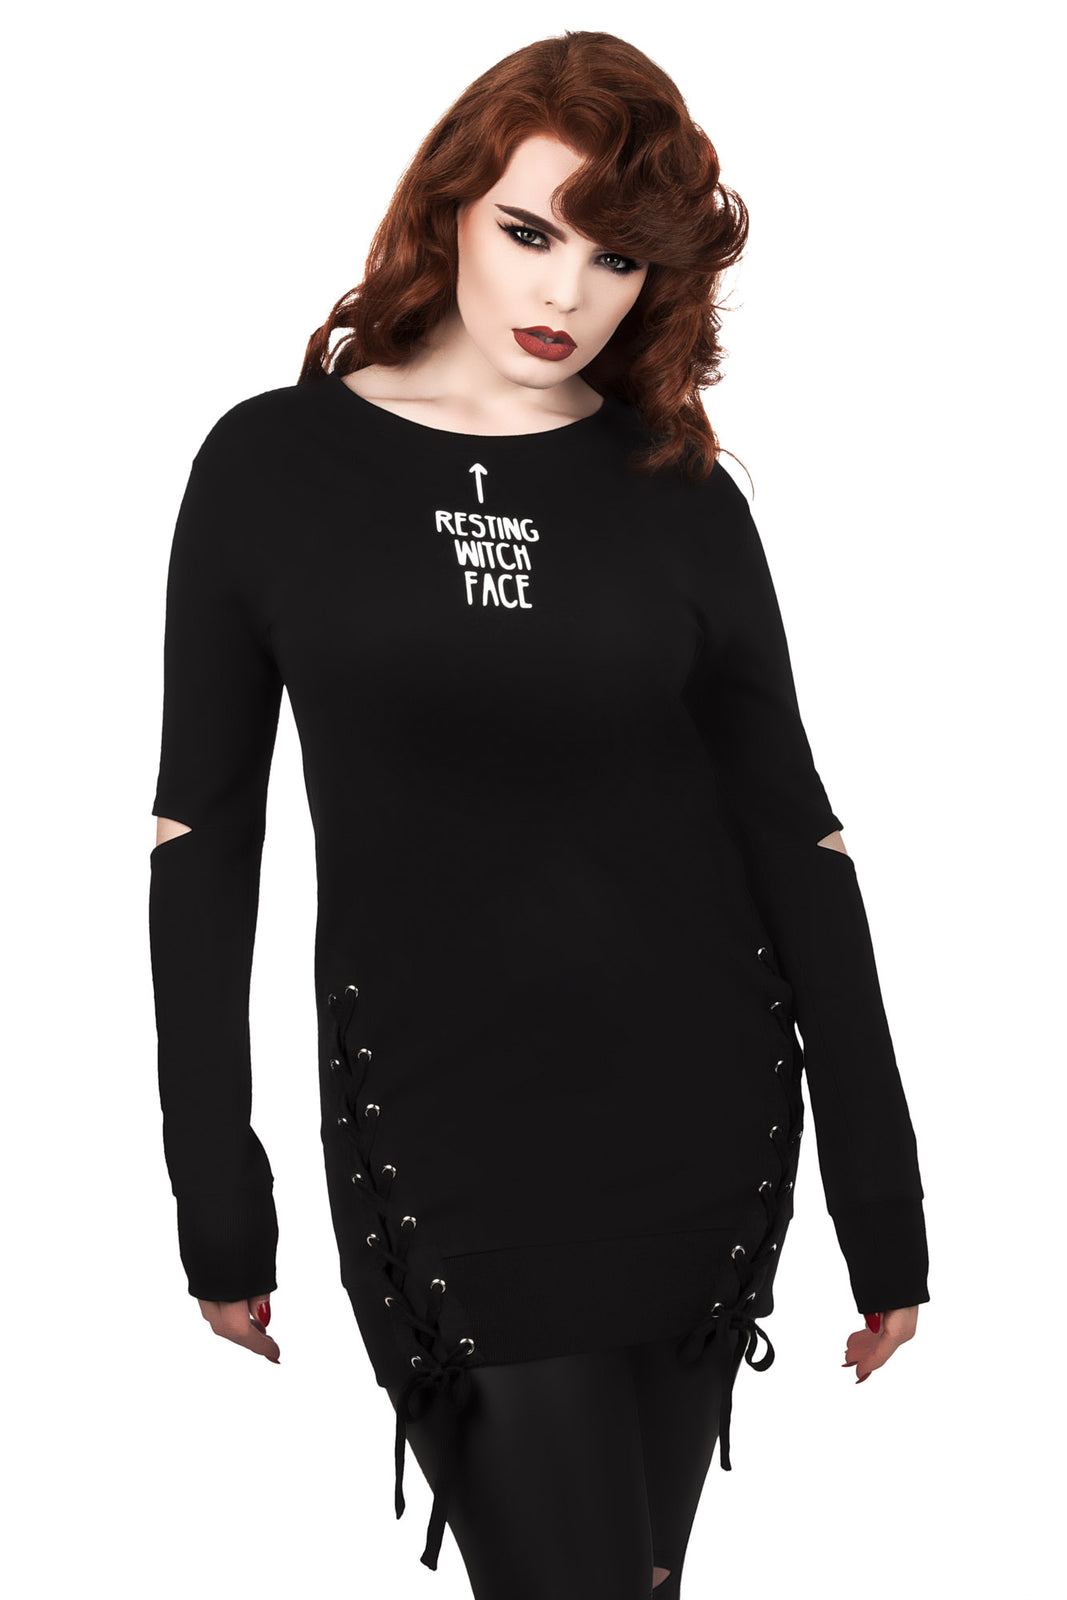 Resting Witch Face Sweatshirt [B]